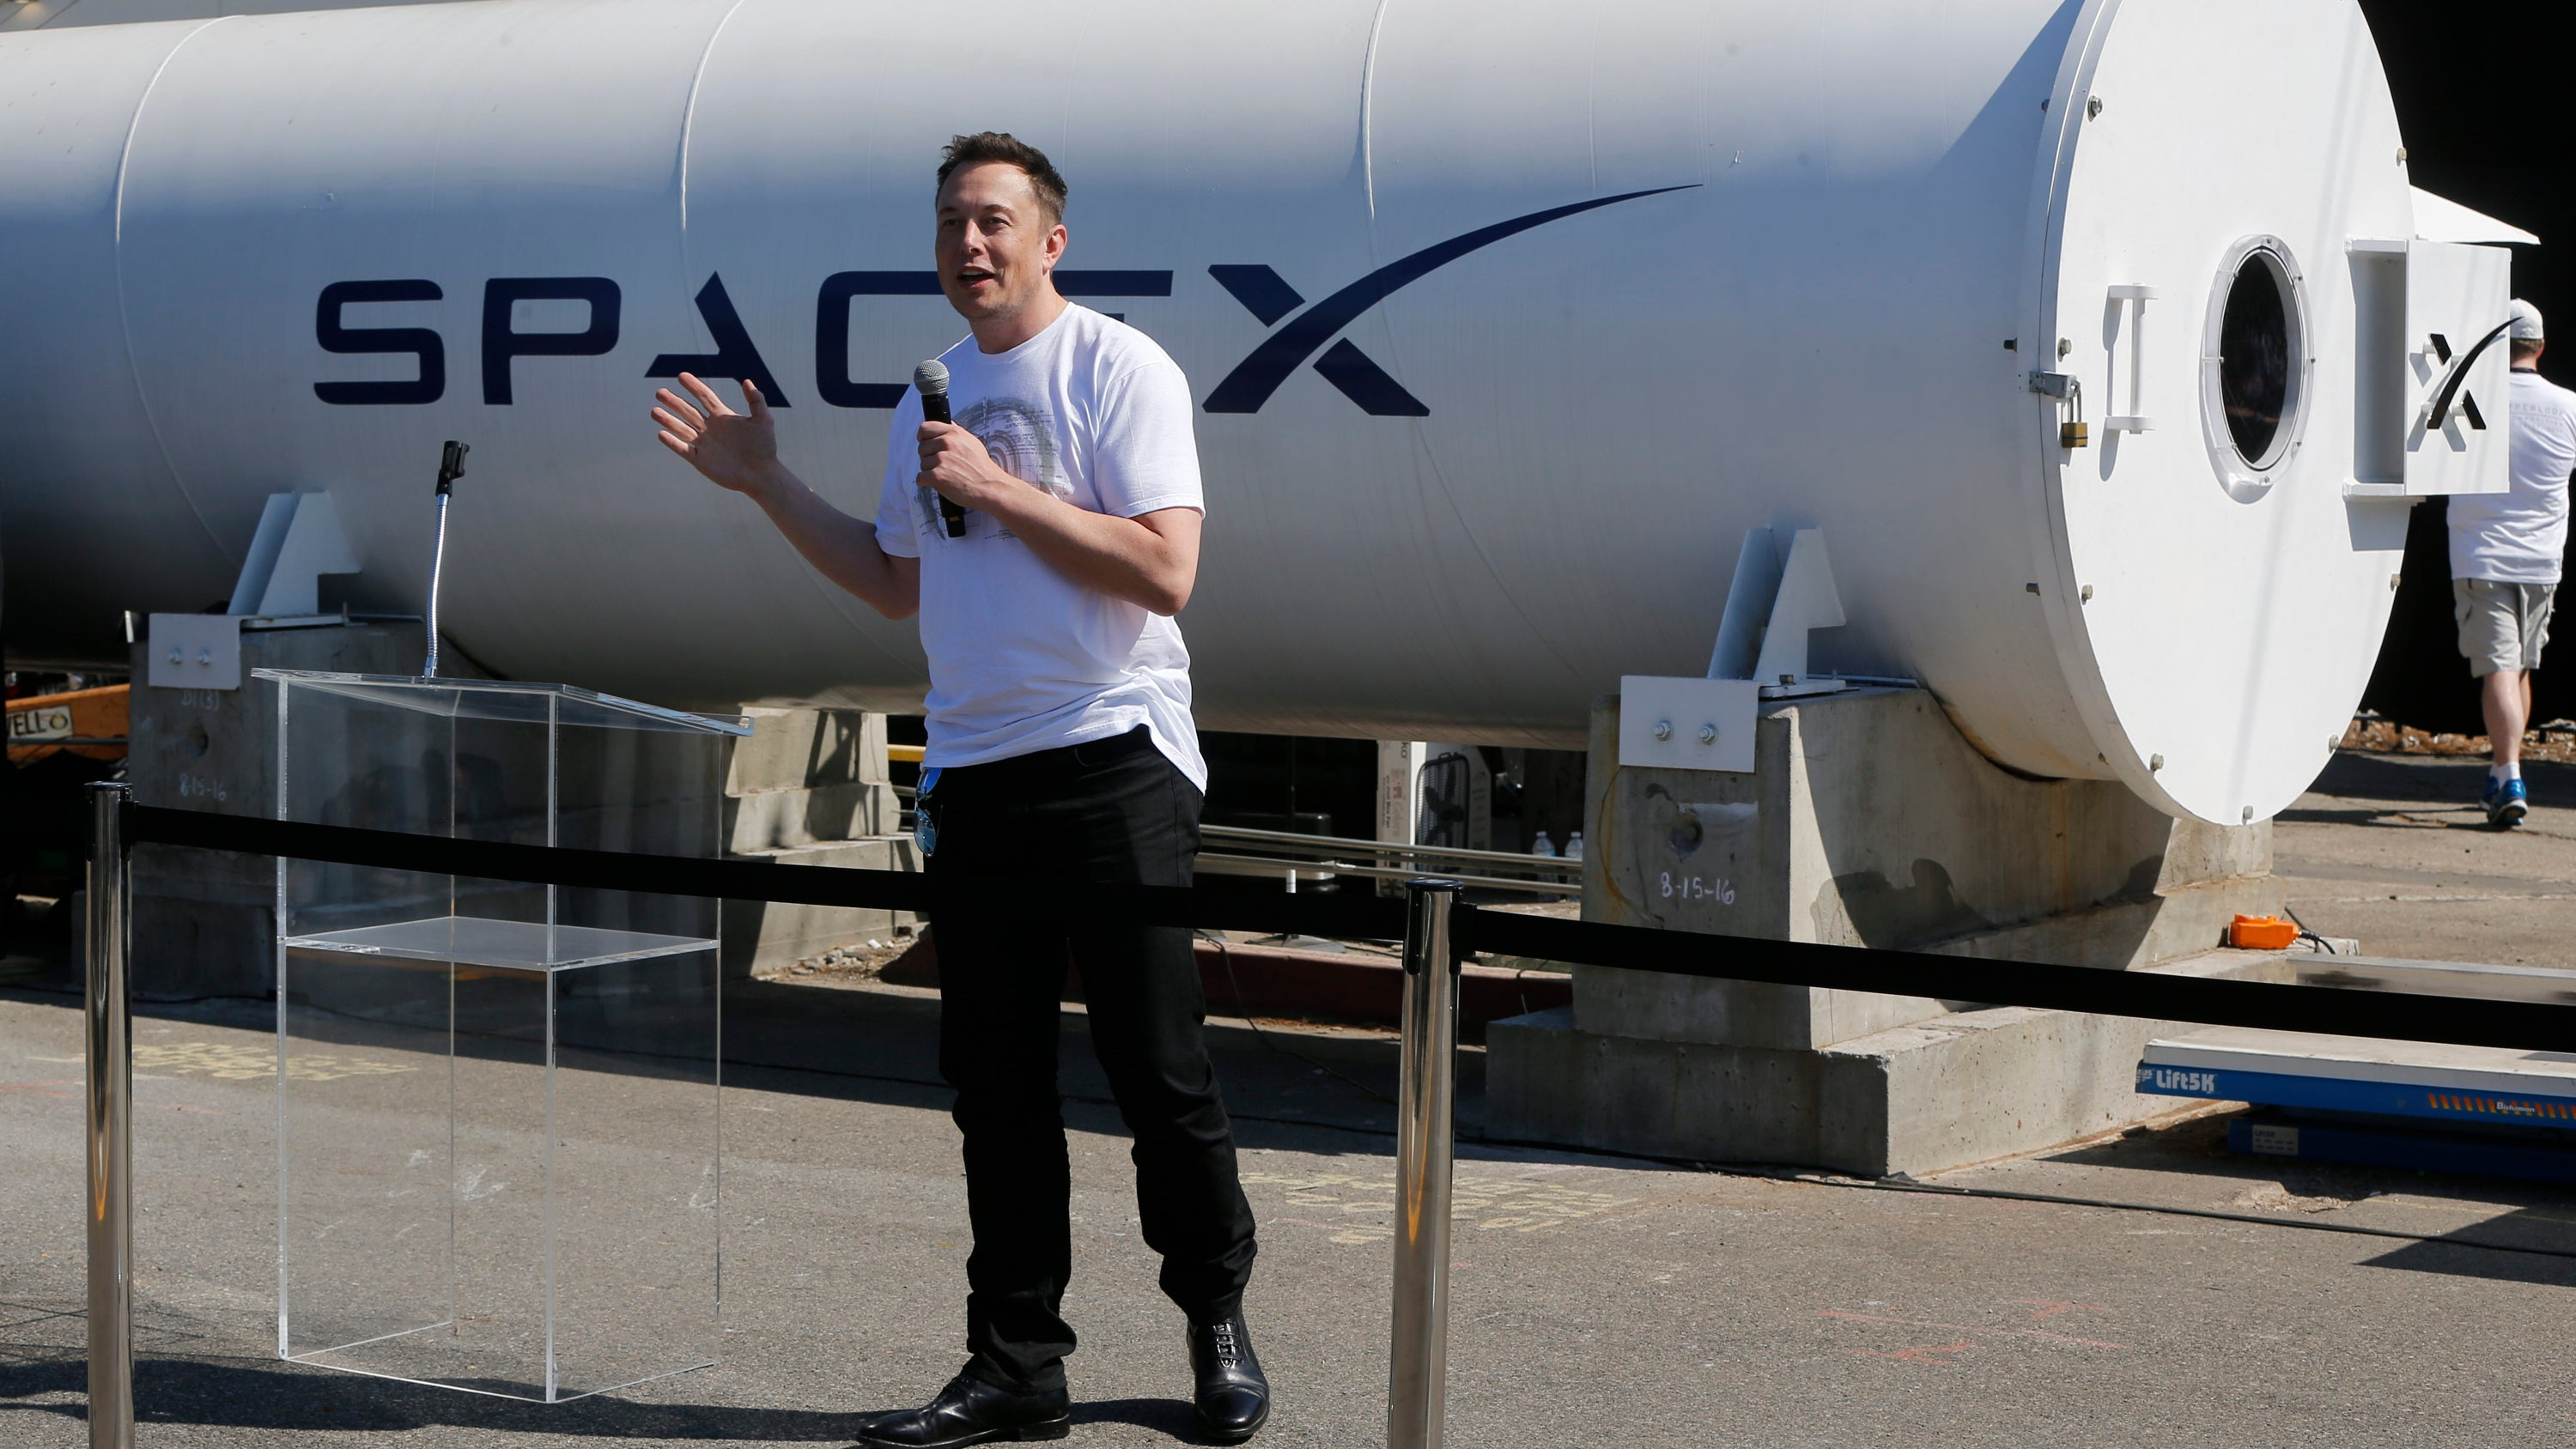 Elon Musk releases plan for tunnel system under Los Angeles